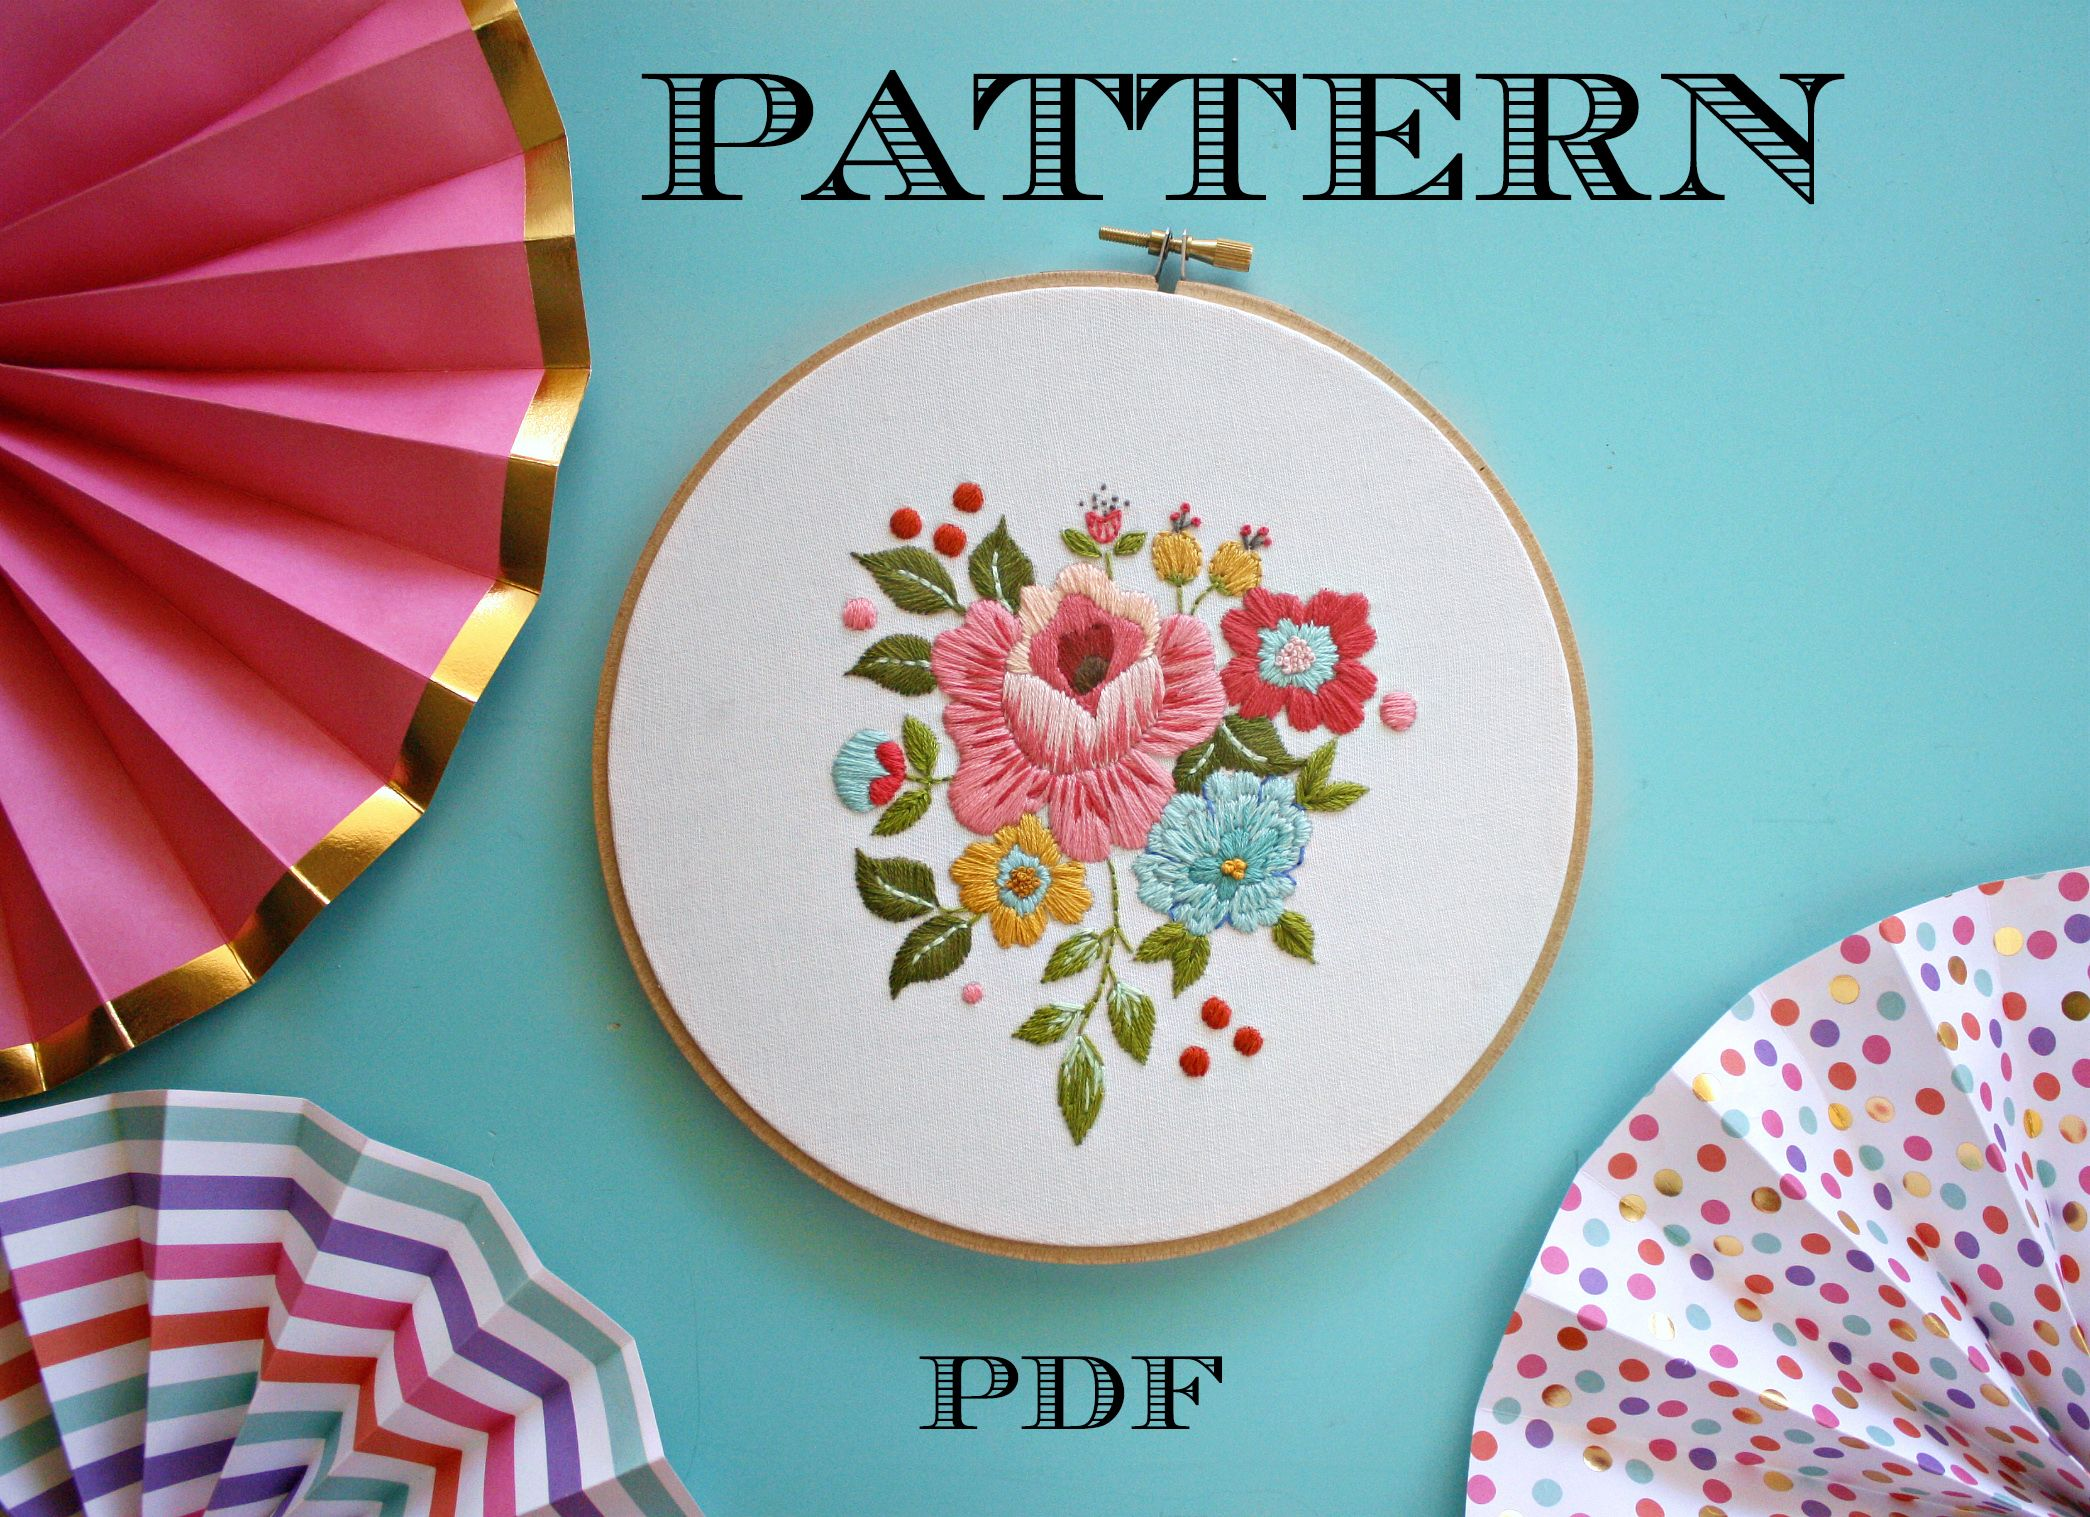 Floral embroidery pattern vintage inspired embroidery kitinstant floral embroidery pattern vintage inspired embroidery kitinstant download pdfhand embroidery patternprintable stitching pattern solutioingenieria Images